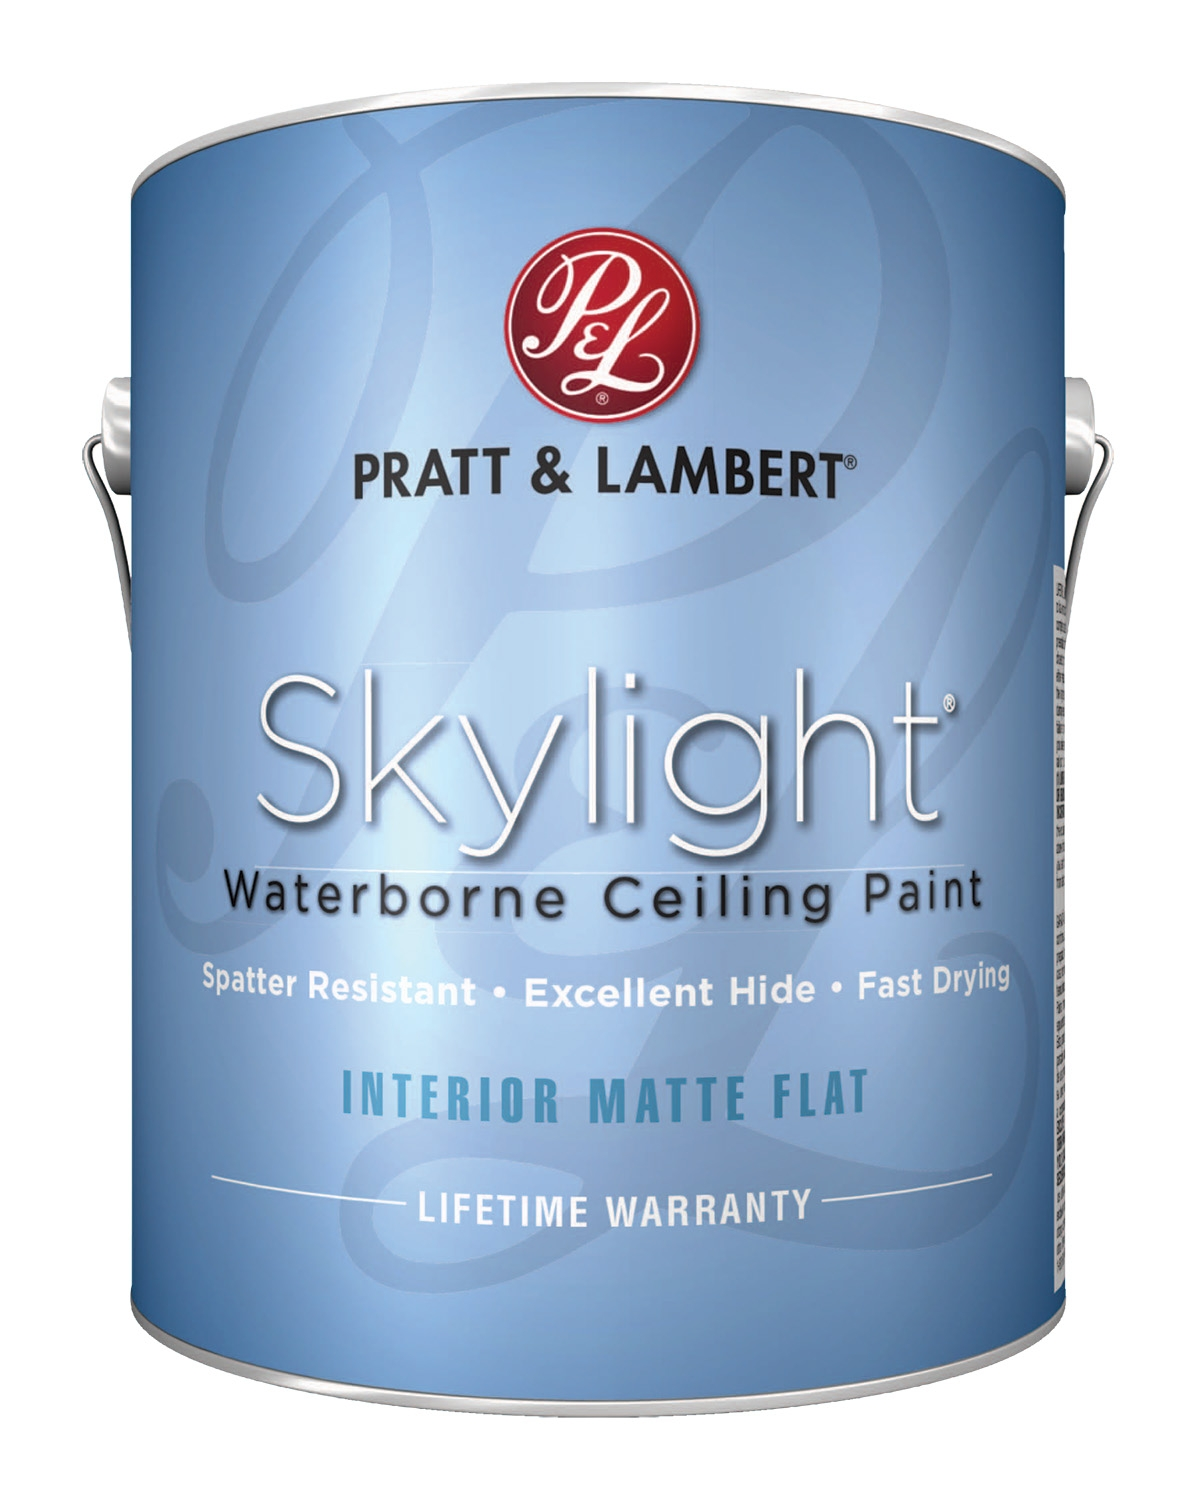 Pratt & Lambert Skylight® Interior Waterborne Ceiling Paint